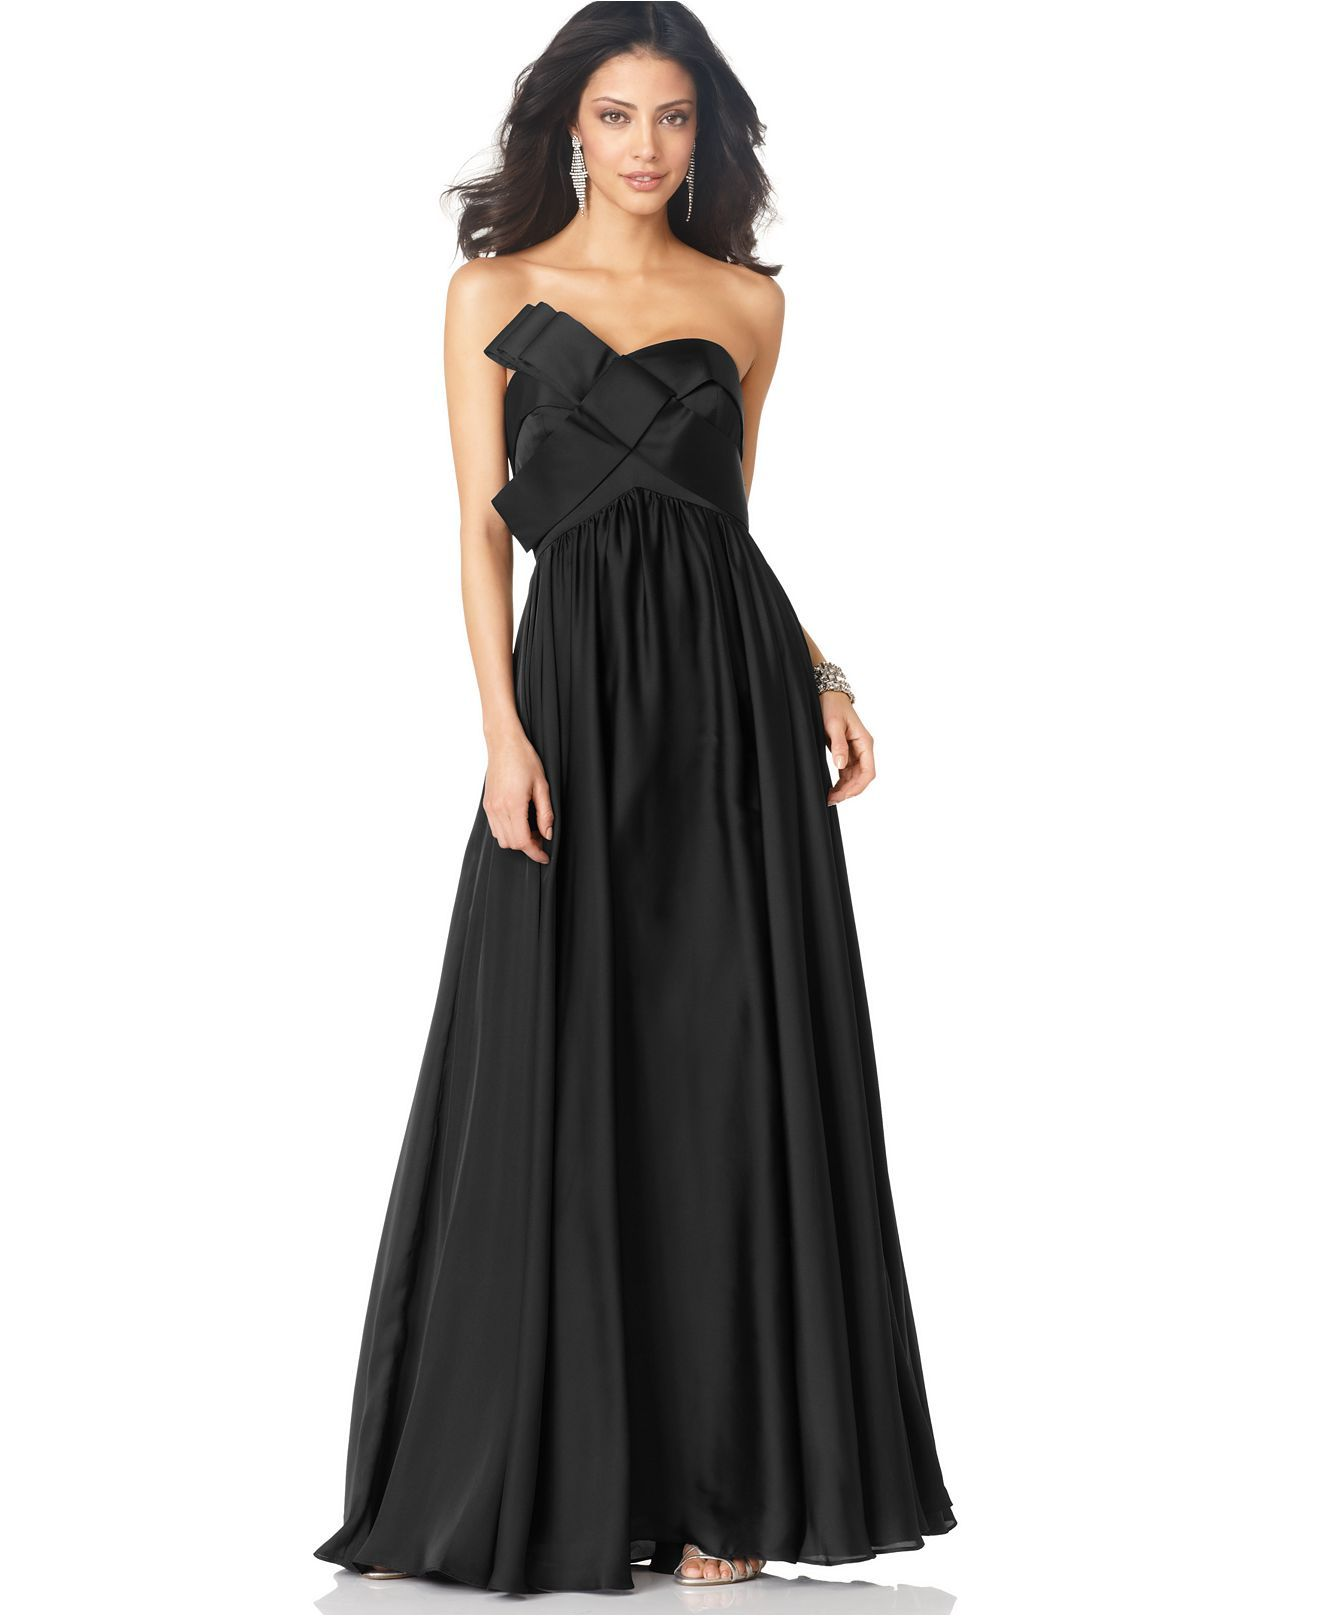 Another formalblack tie event dress i like my style pinterest js collections dress strapless long evening dress womens dresses macys kind of love this just because its the same dress the skinny chick wore on ombrellifo Images